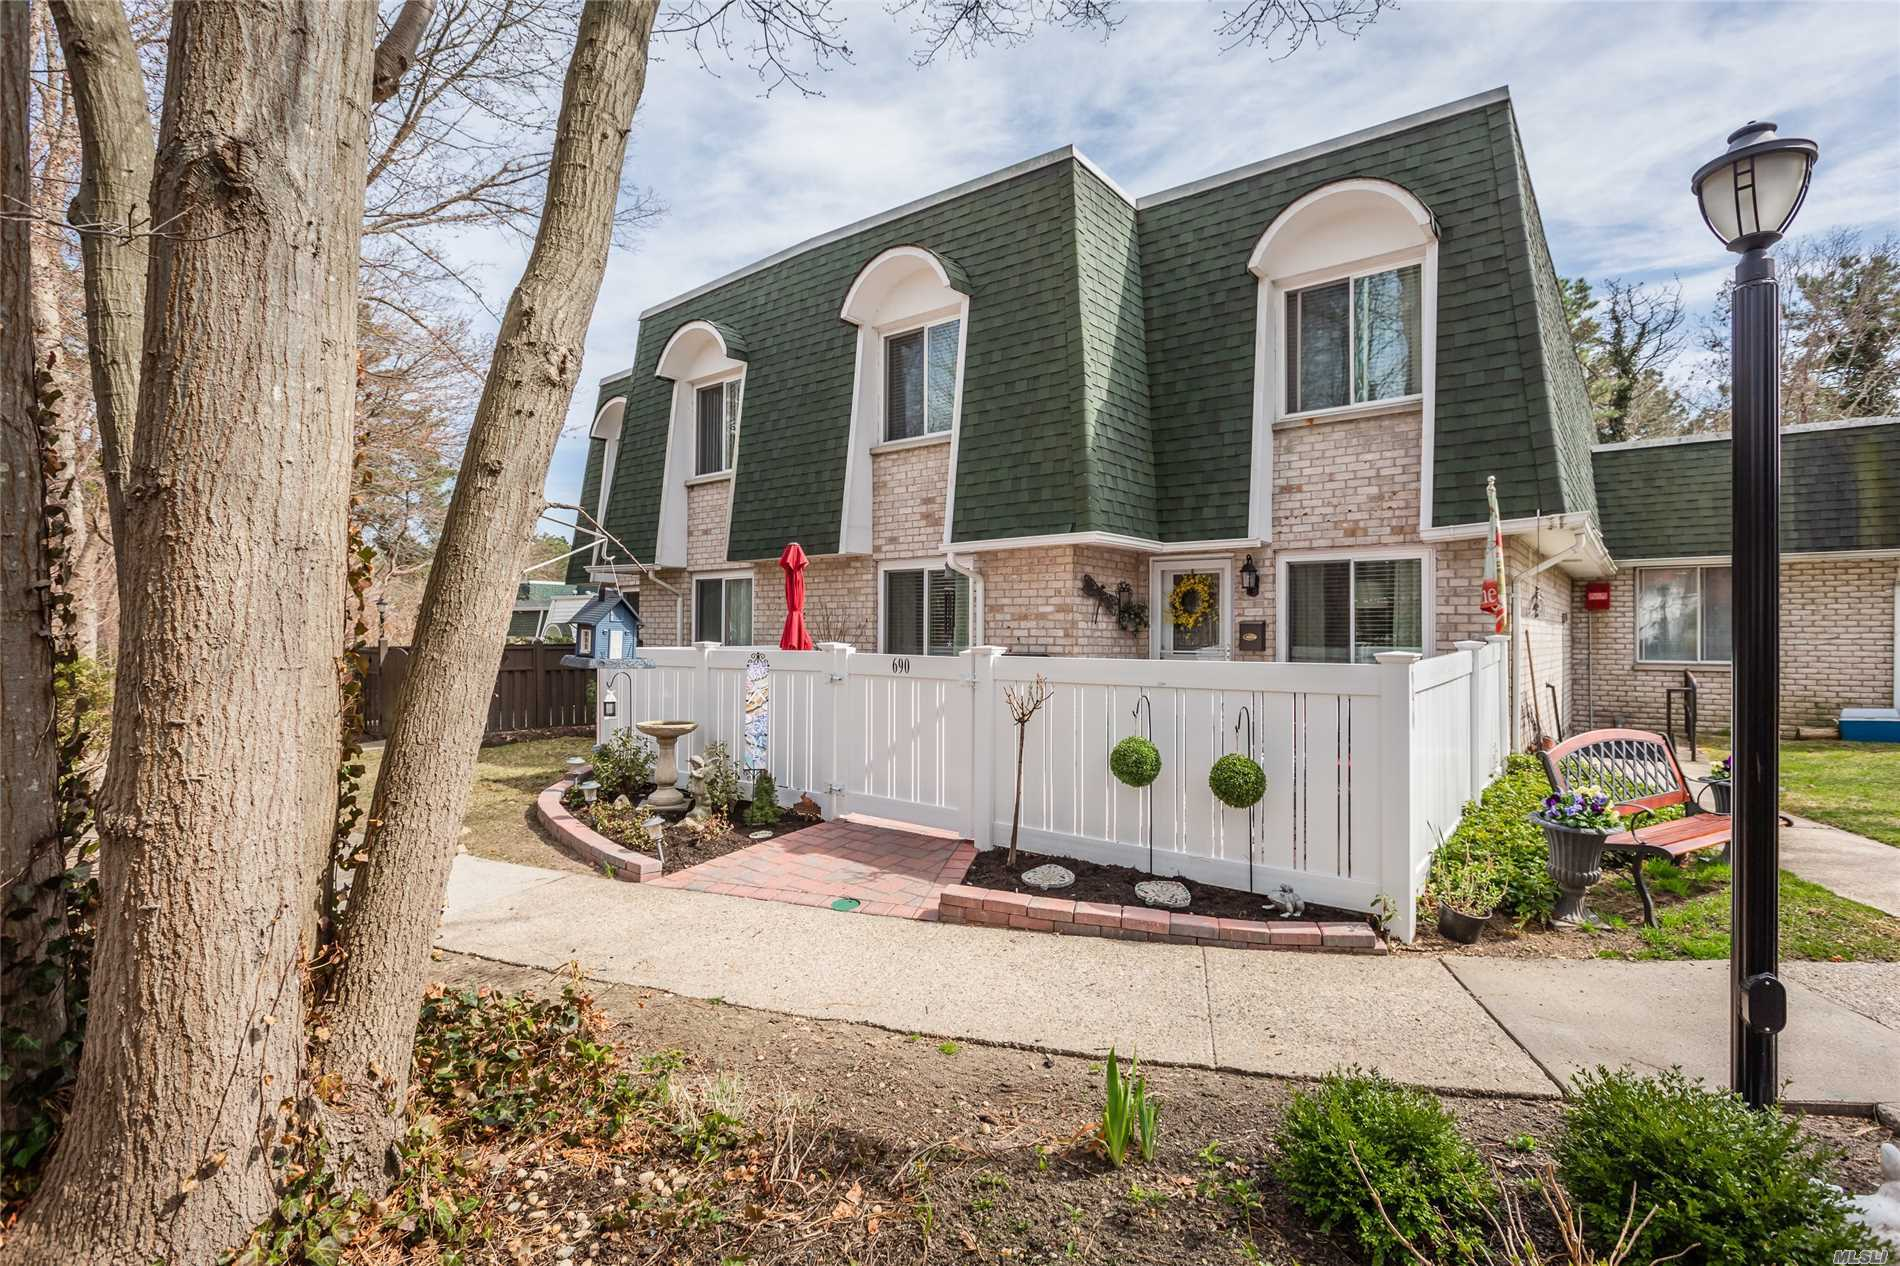 Offered In Value Range $259, 000-$299, 875. Come See This 2 Bedroom 2.5 Bath Diamond Carlton/Eldorado Model Set In A Desired Private Location. Amenities Include Updated Kitchen; Redone Baths; Wood Floors; Redone Patio; New Vinyl Fencing & More. Make This Ready to Move In Special Unit Yours!